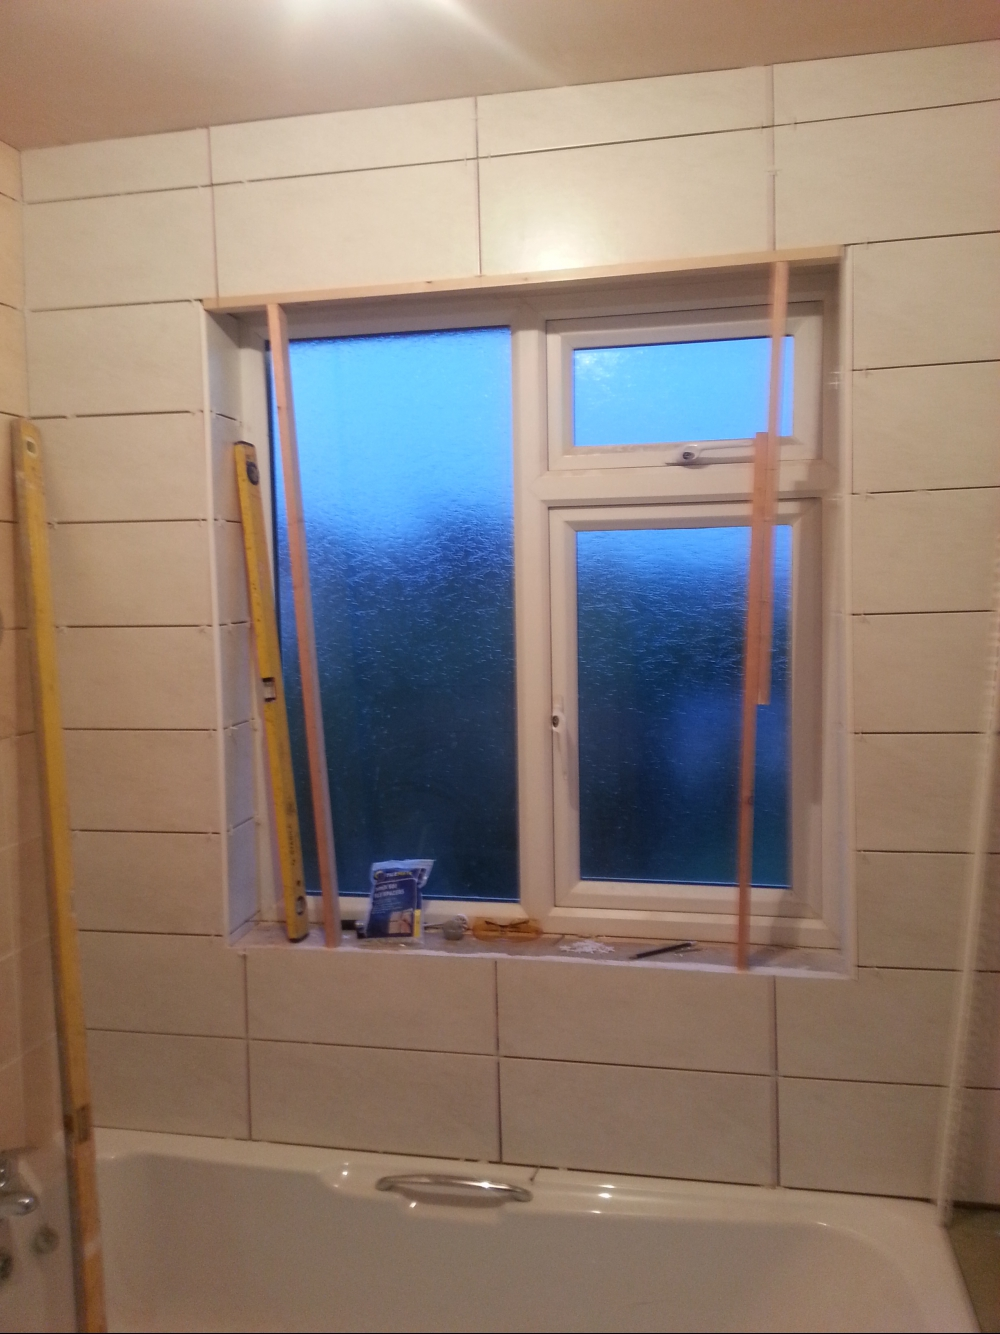 Complete re-fit of a bathroom